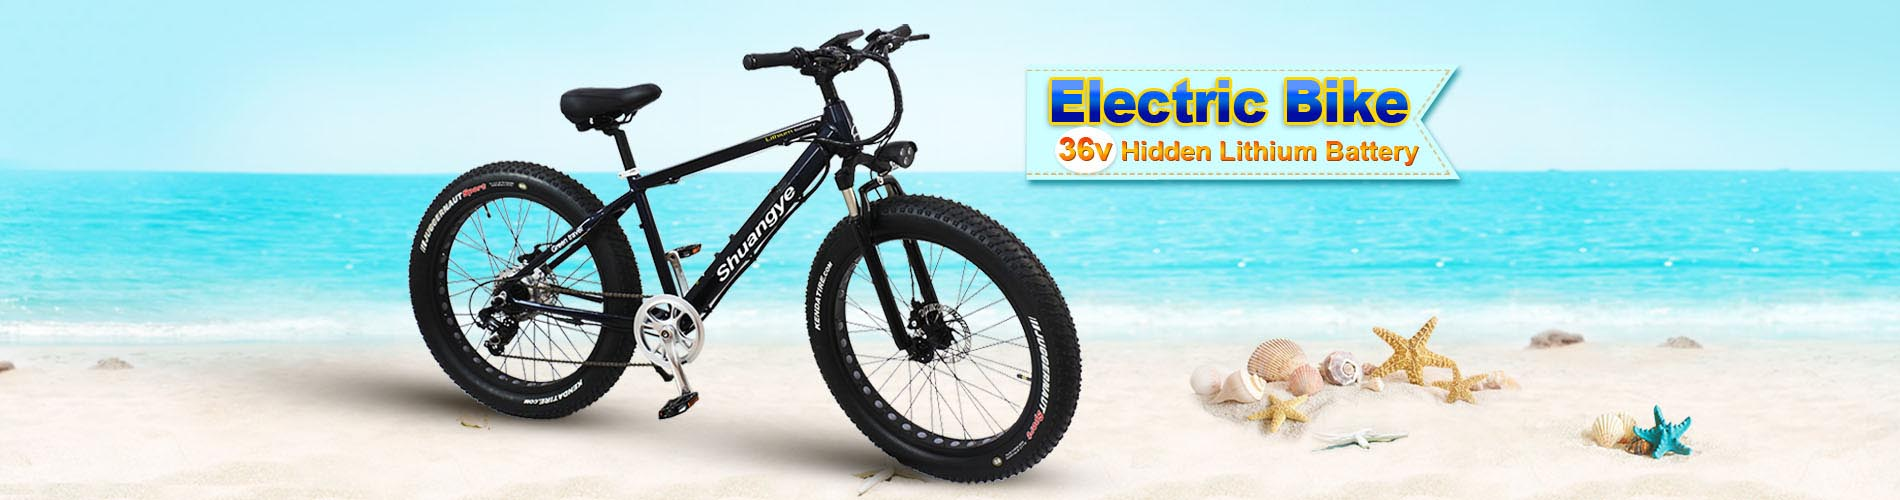 2017 Newest city electric bicycle with hidden battery